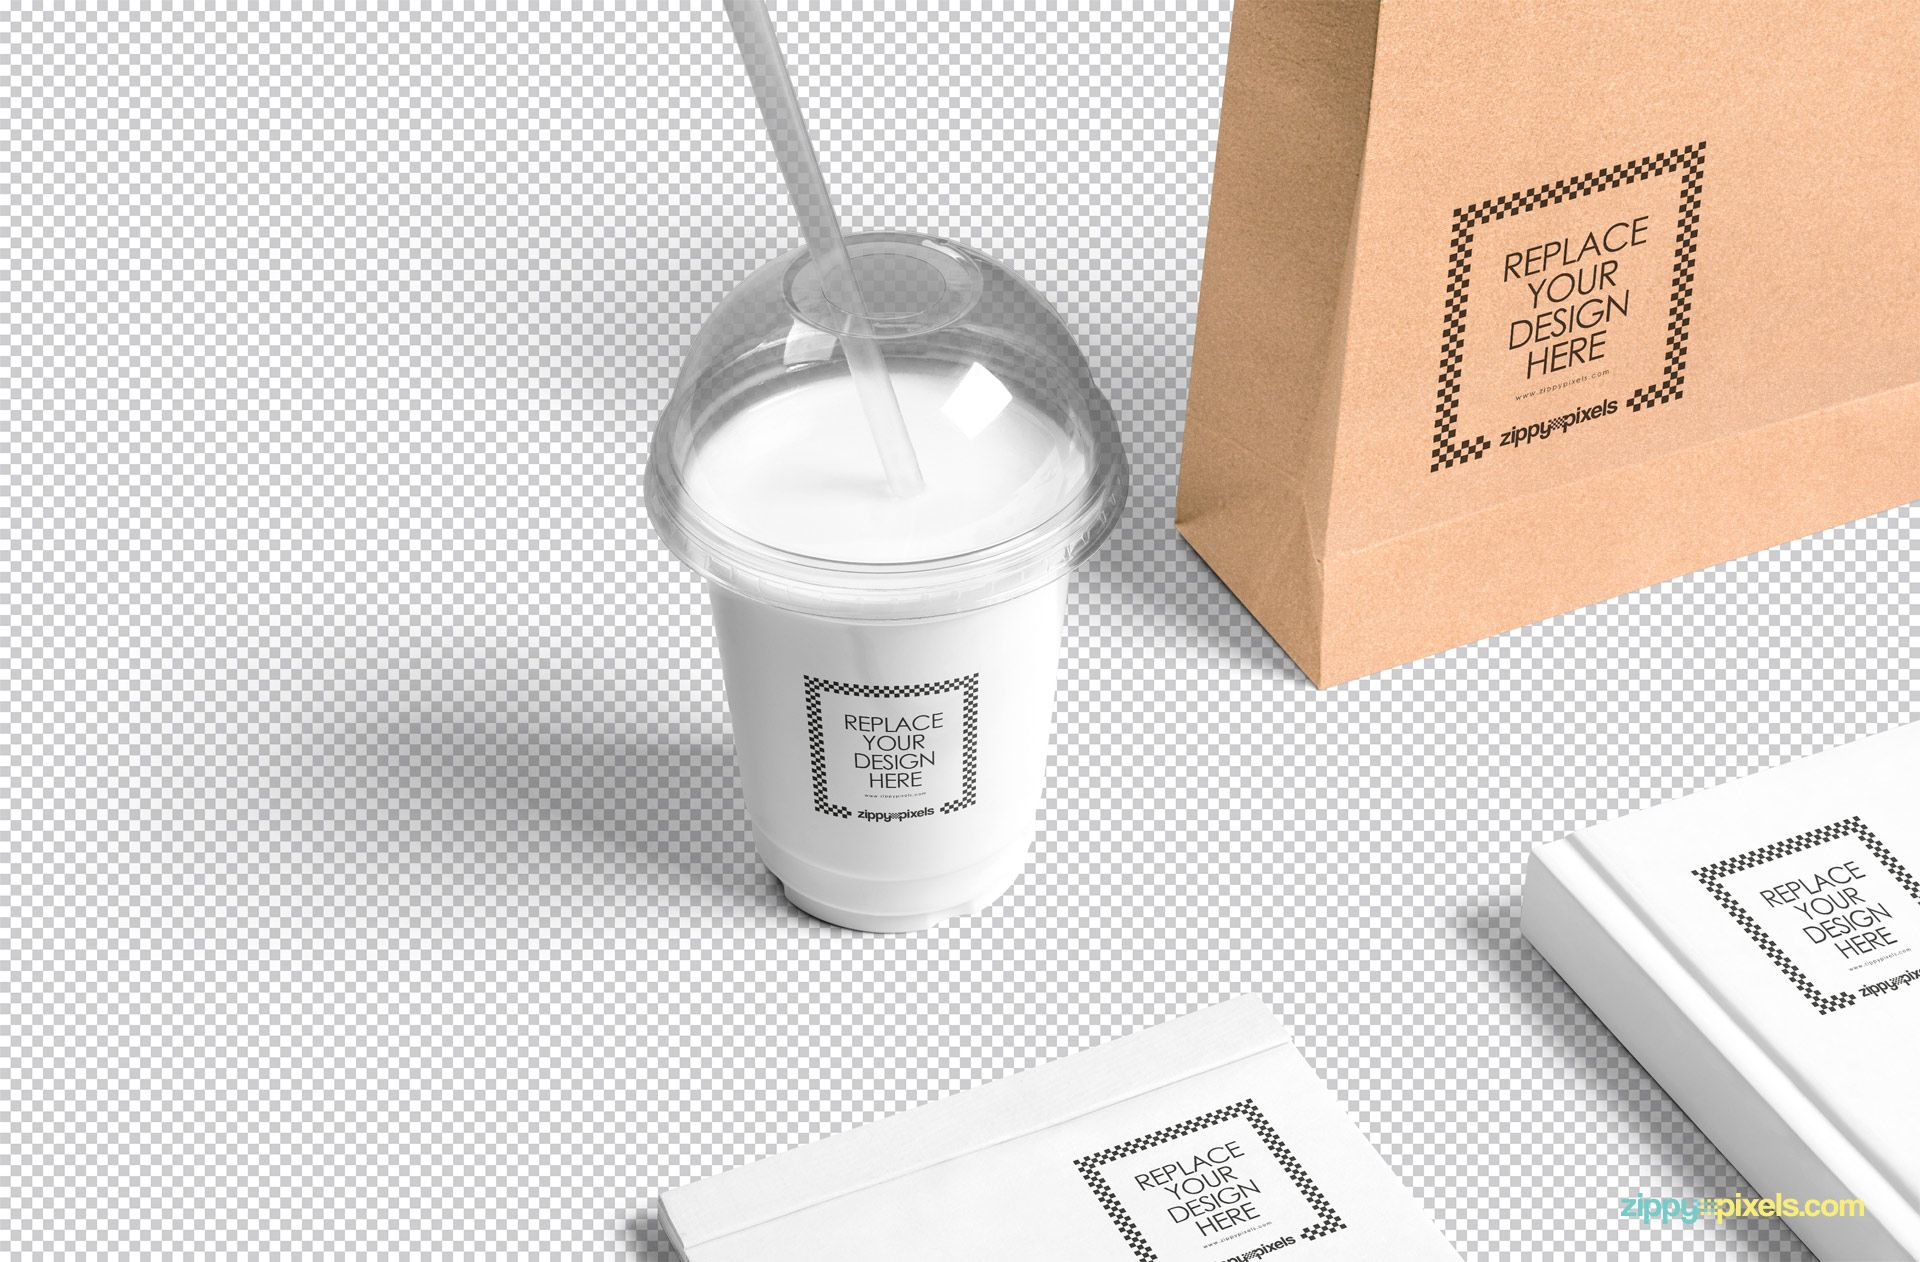 Clear Plastic Cup Mockup Free Free Psd Mockups Free Psd Mockups Smart Object And Templates To Create Magazines Books Stationery Clothing Mobile Packaging Business Cards